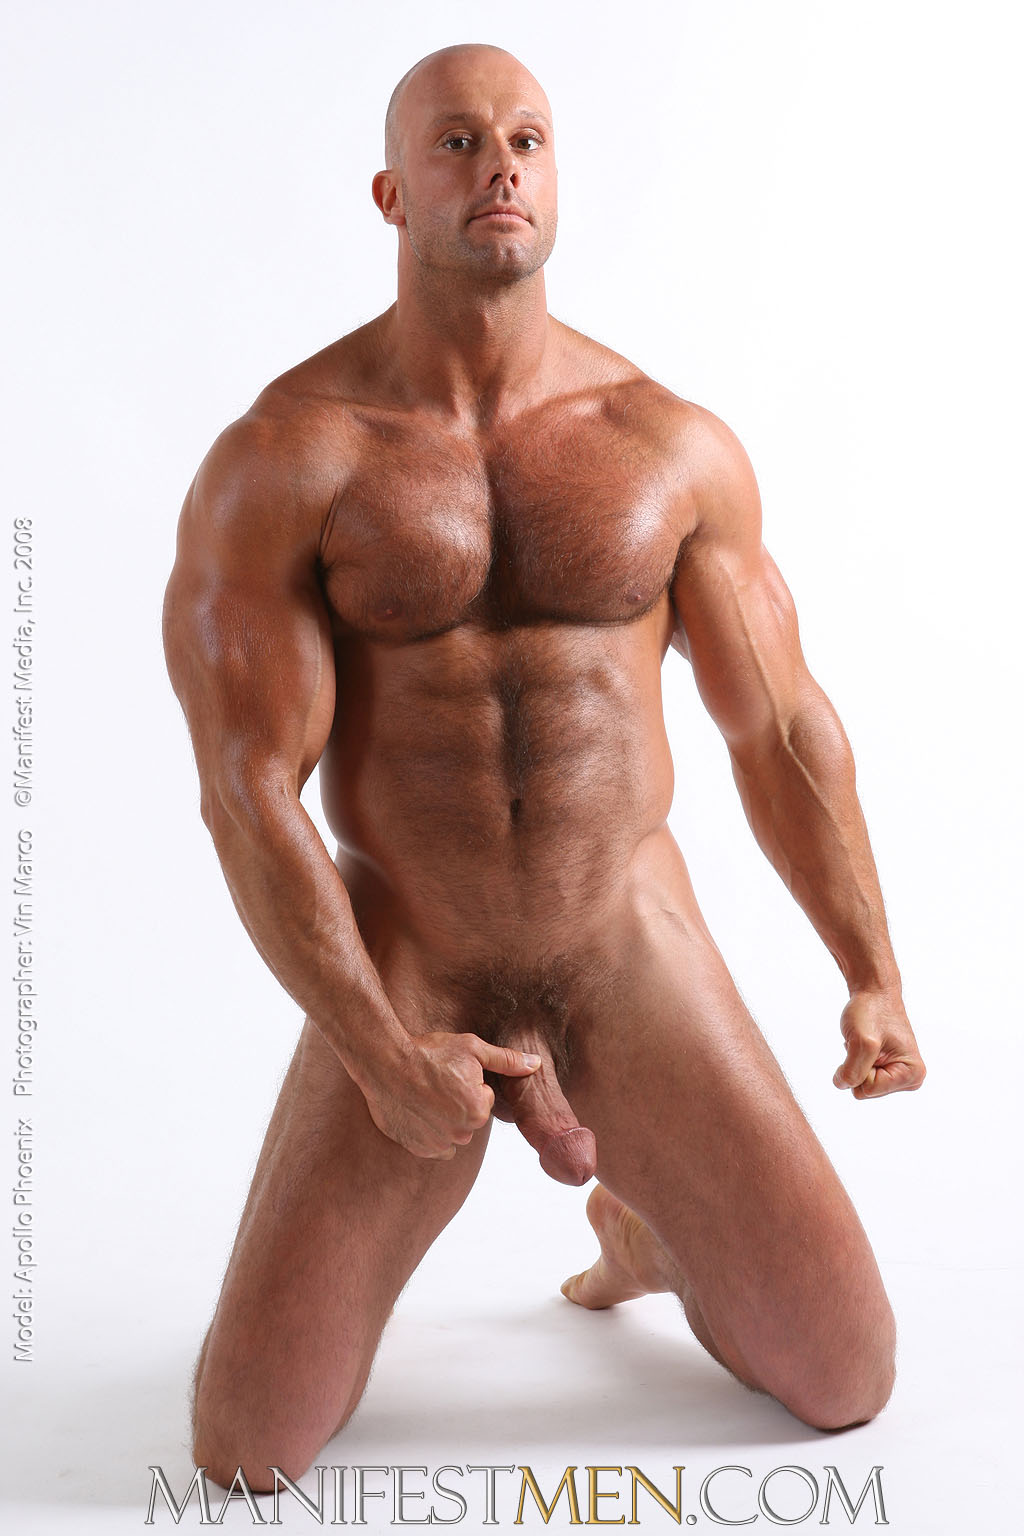 Magnificent words hairy bodybuilder gallery sorry, that